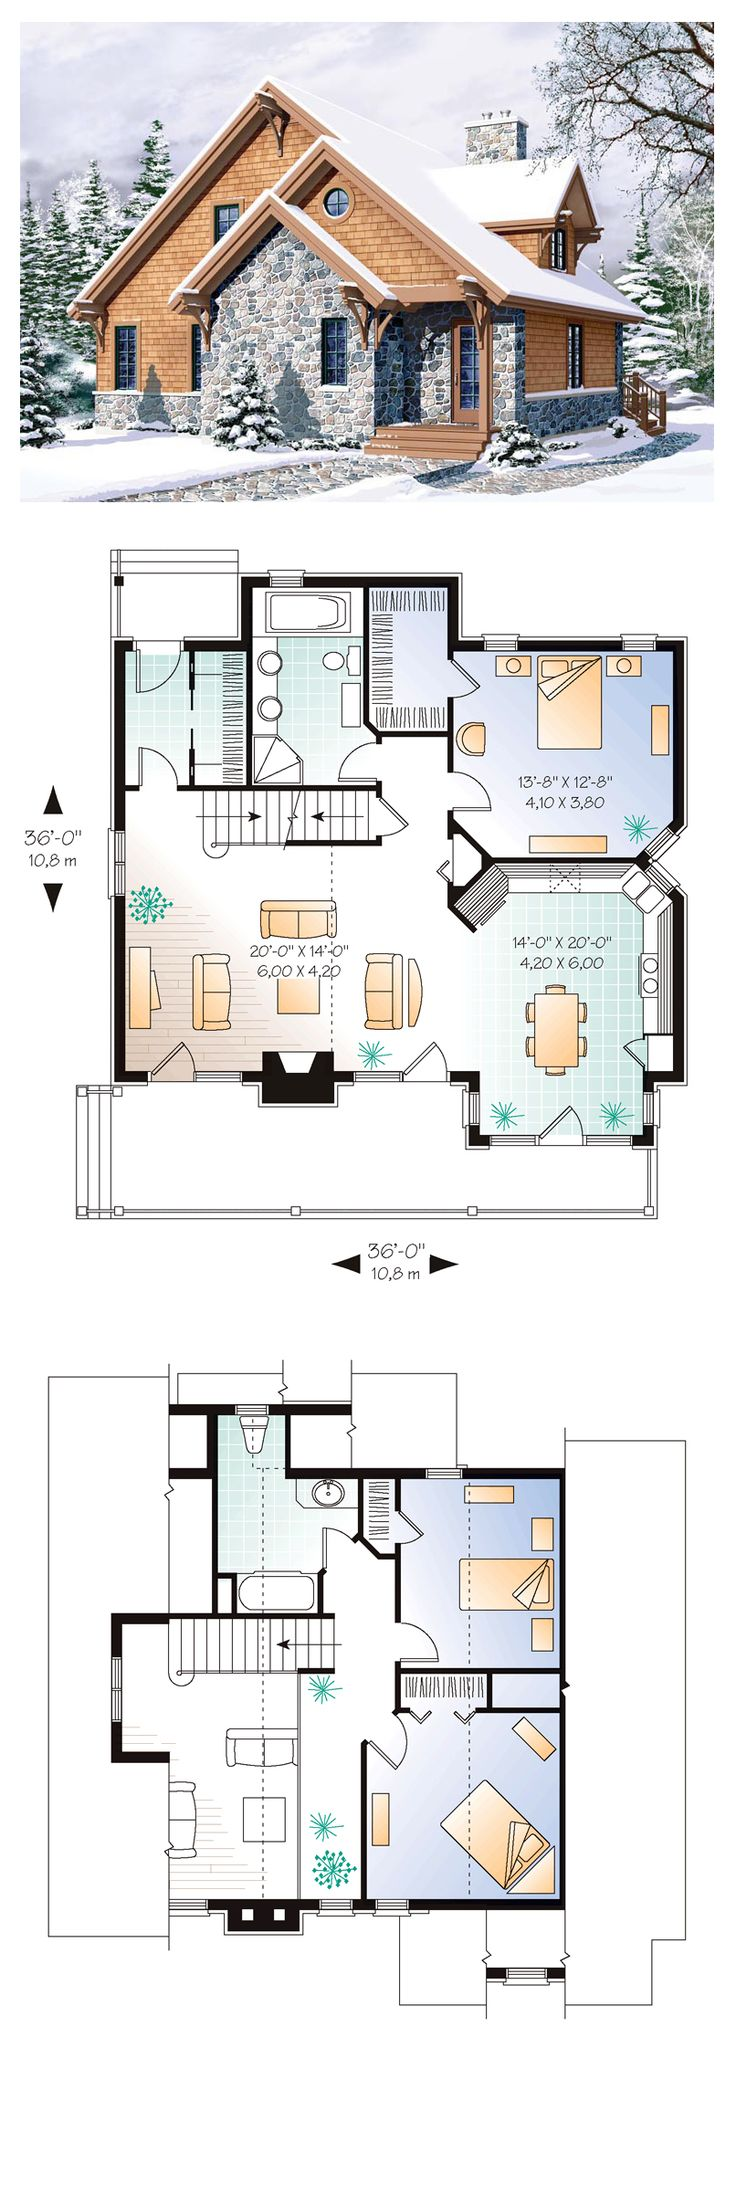 Craftsman House Plan 65246   Total Living Area: 1625 sq. ft., 3 bedrooms 2 bathrooms. The cozy comfort of this home, especially at this time of the year, offers warmth and takes advantage of the limited light through the many large windows. #houseplans #craftsmanstyle